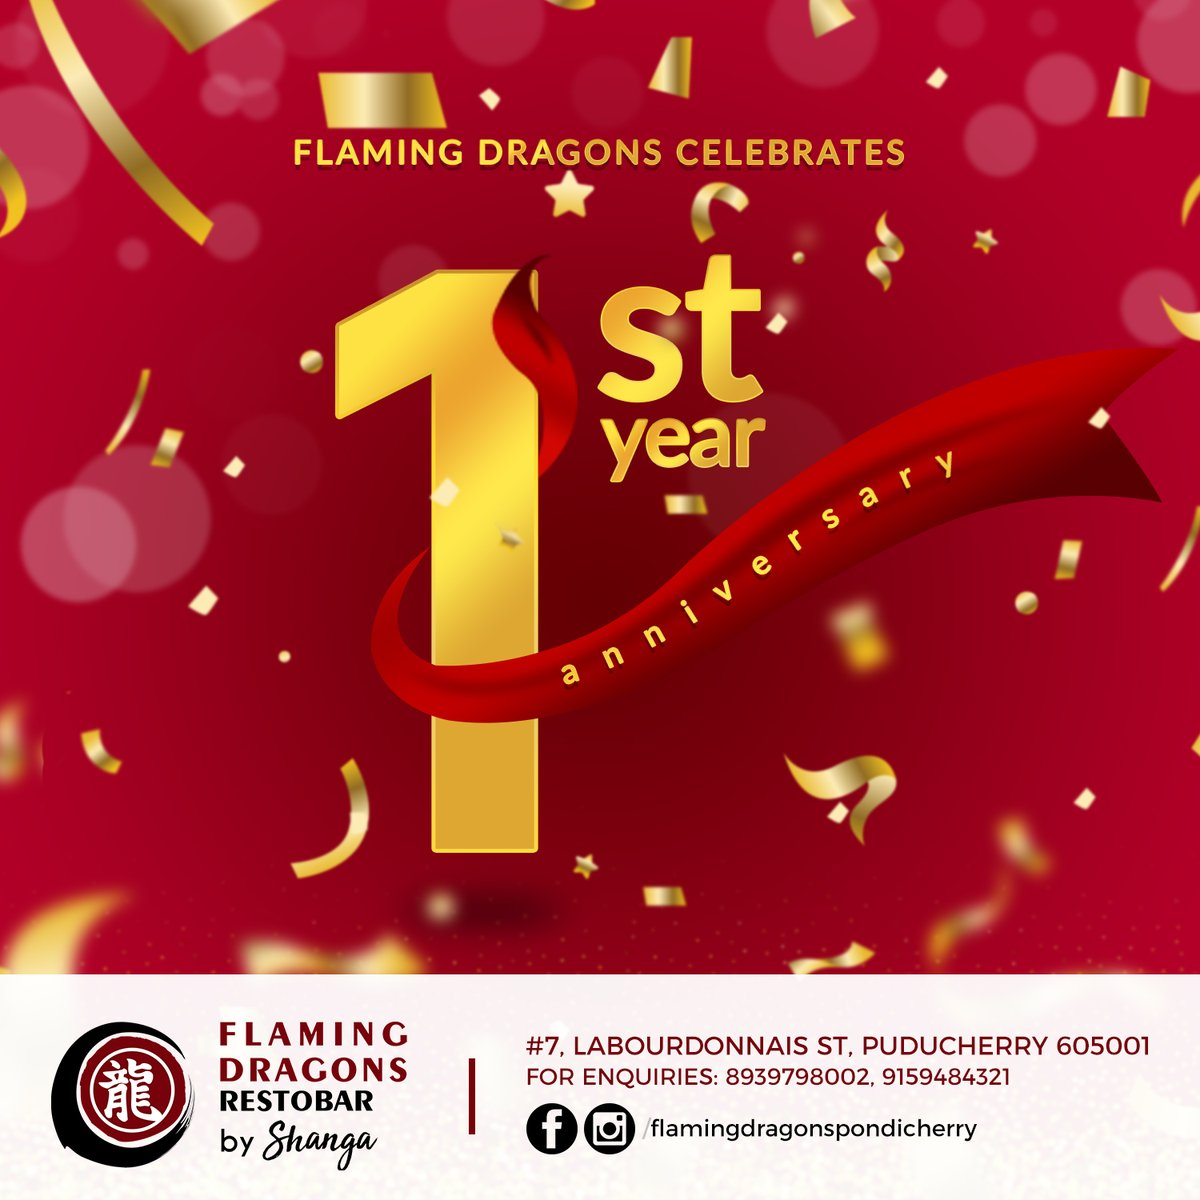 Yippee! Flaming Dragons is celebrating its first year anniversary today. Thanks to all for your love and support. #flamingdragons #pondicherry #puducherry #bonjourpondicherry #pondicherrynightlifepic.twitter.com/nuSzIkrp6G